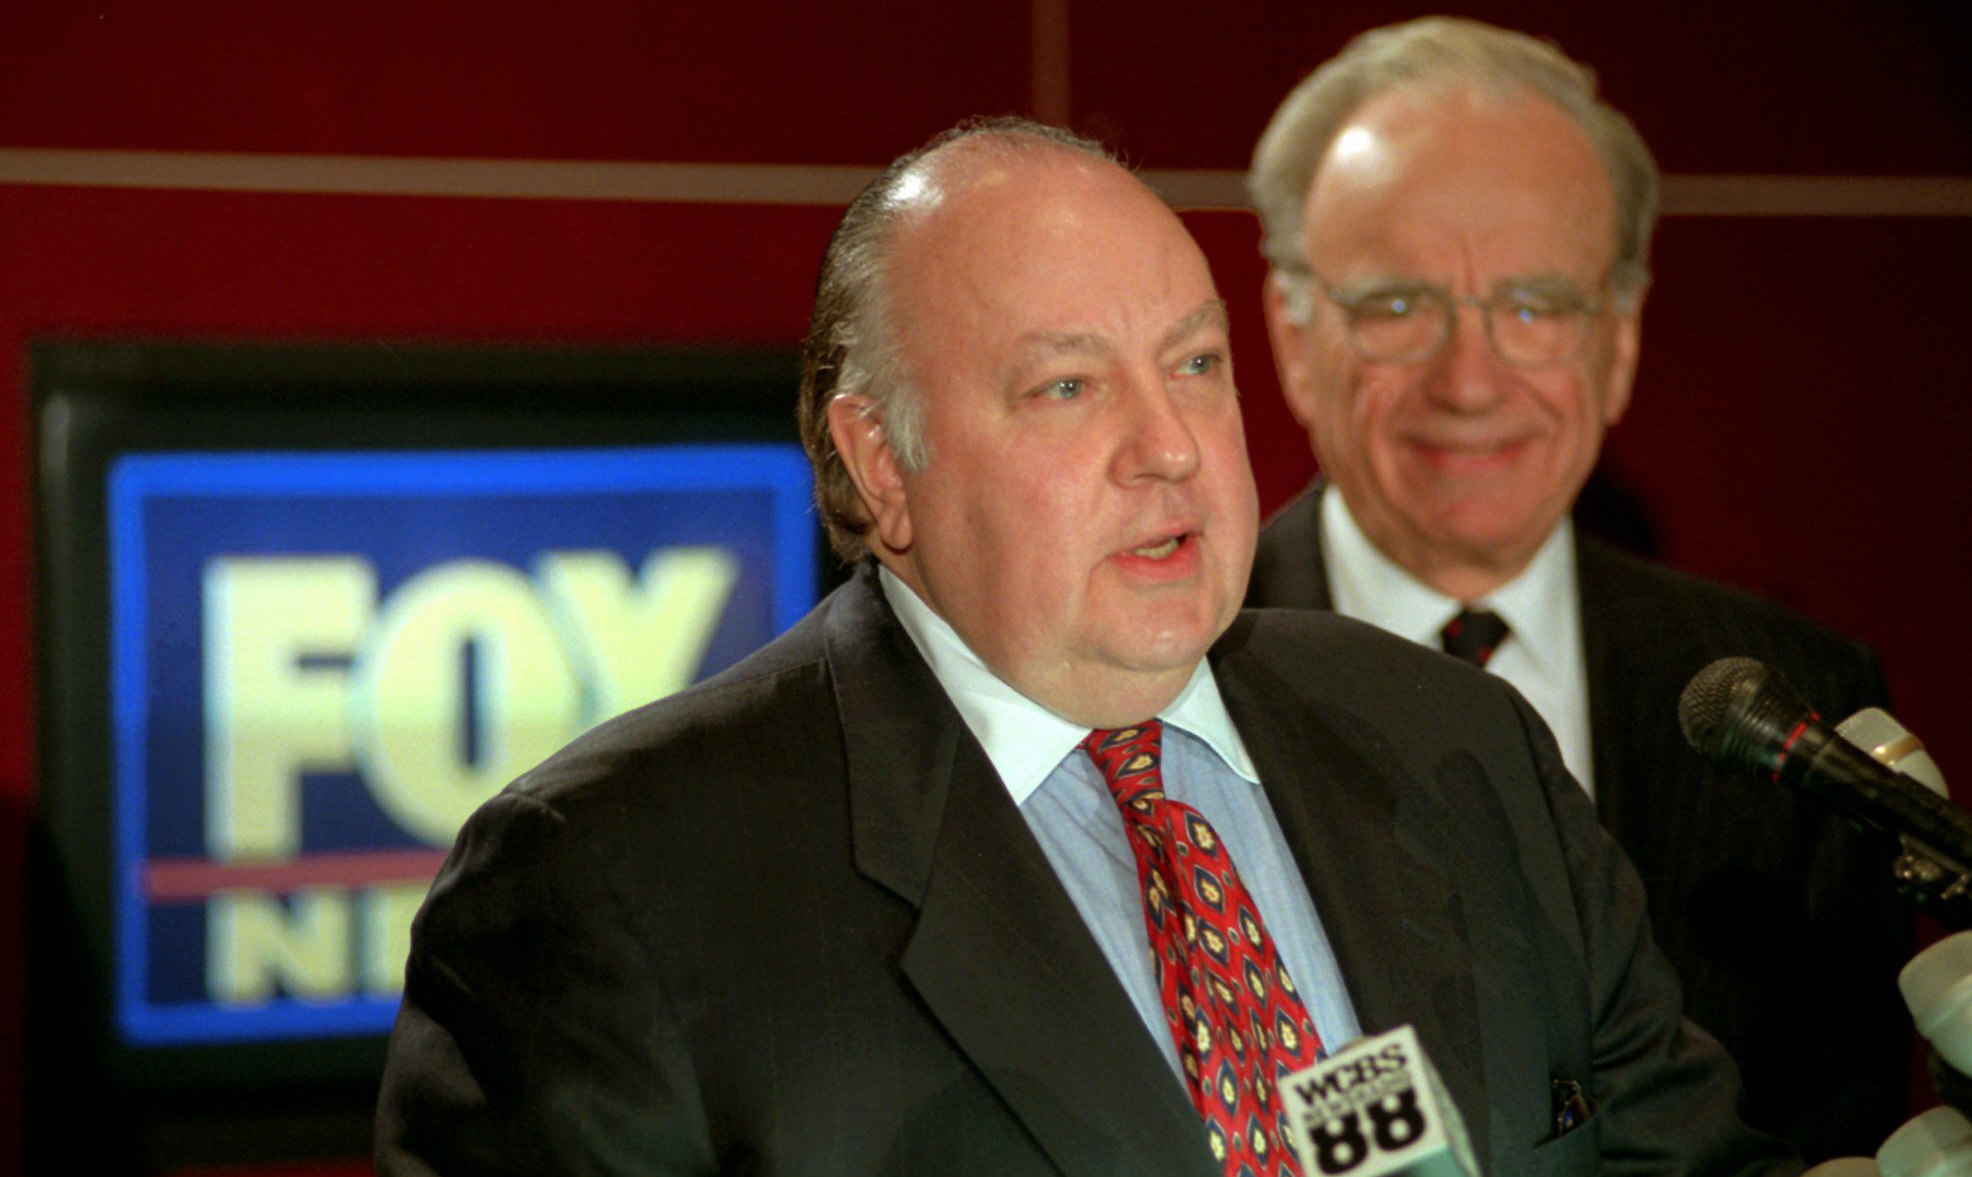 Roger Ailes, left, answers questions after Rupert Murdoch, right, announced Ailes would lead Fox News in 1996.